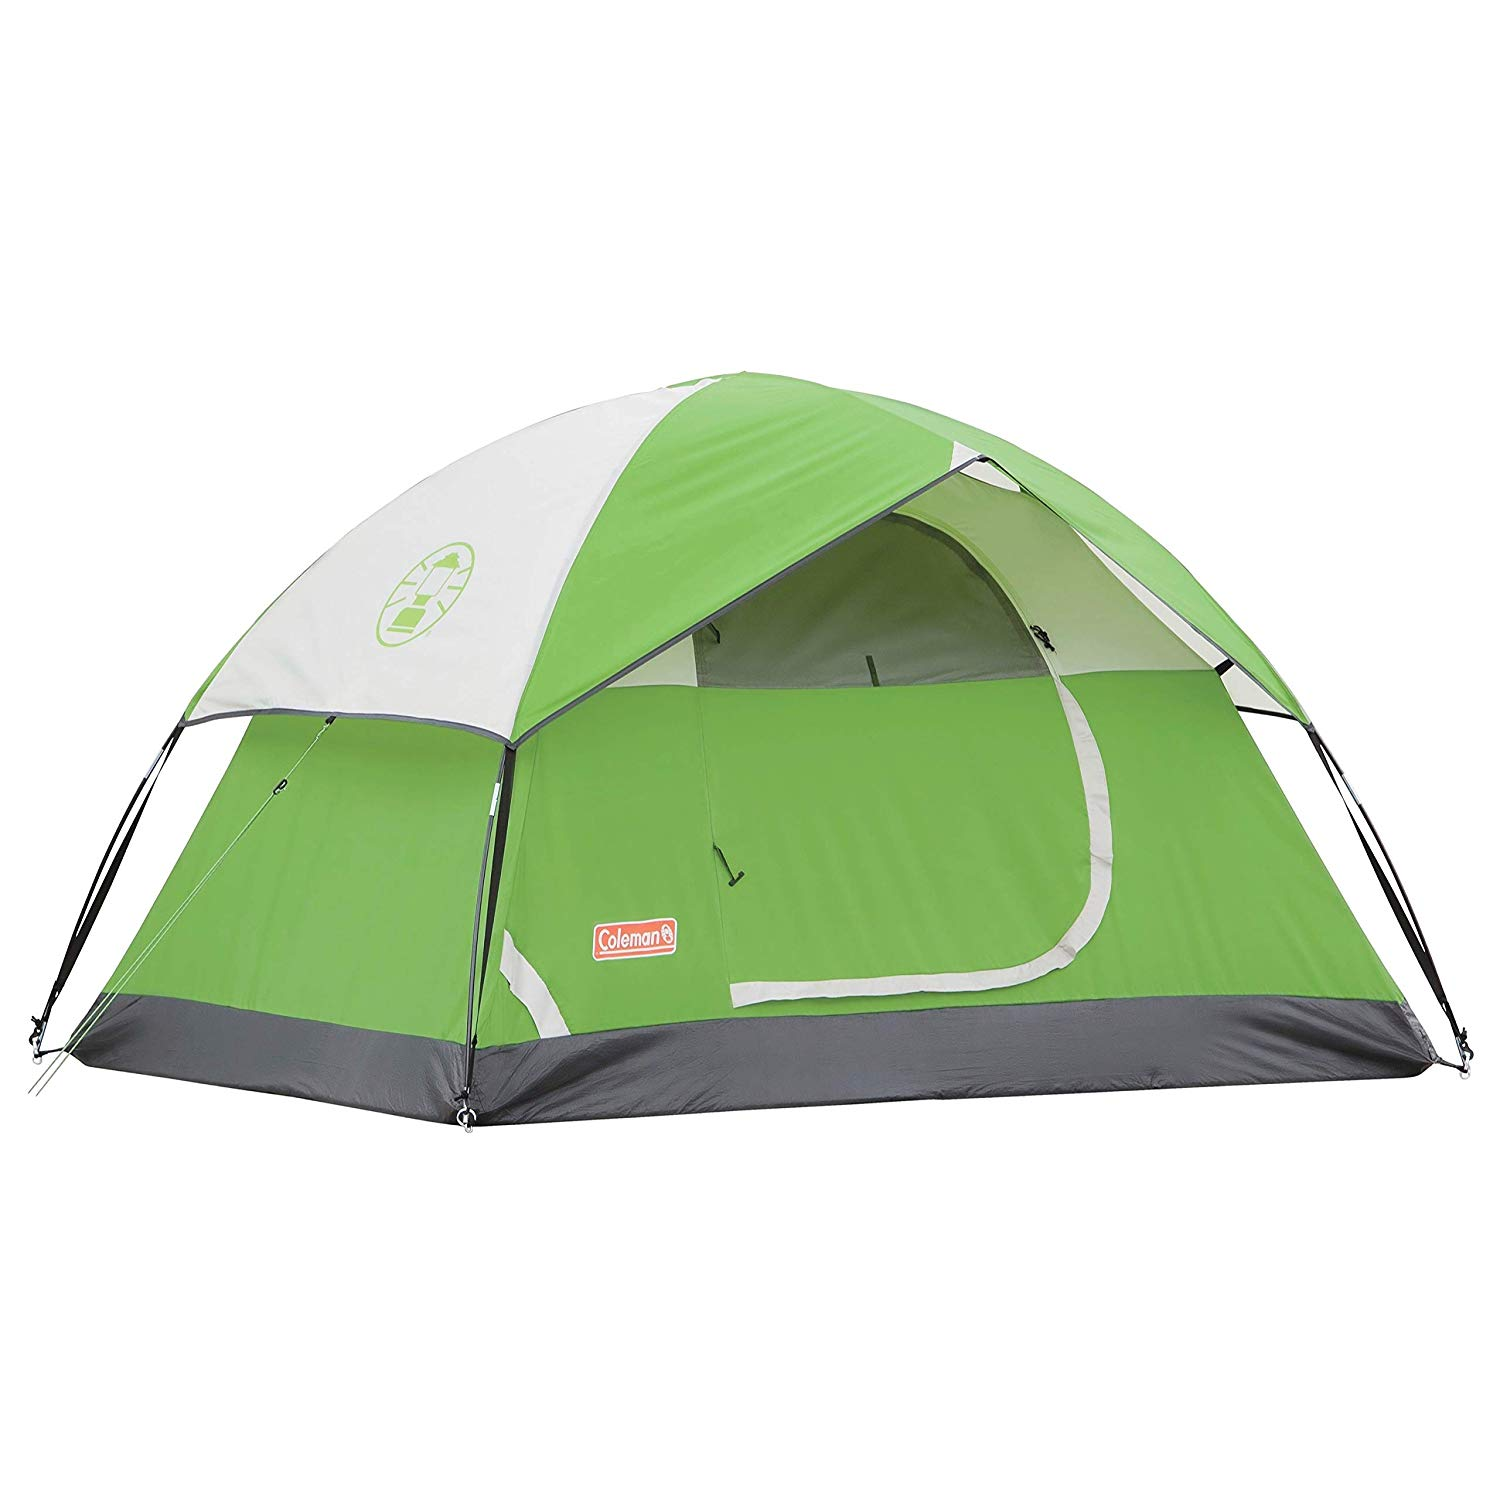 Best Camping Gear For Beginner Campers